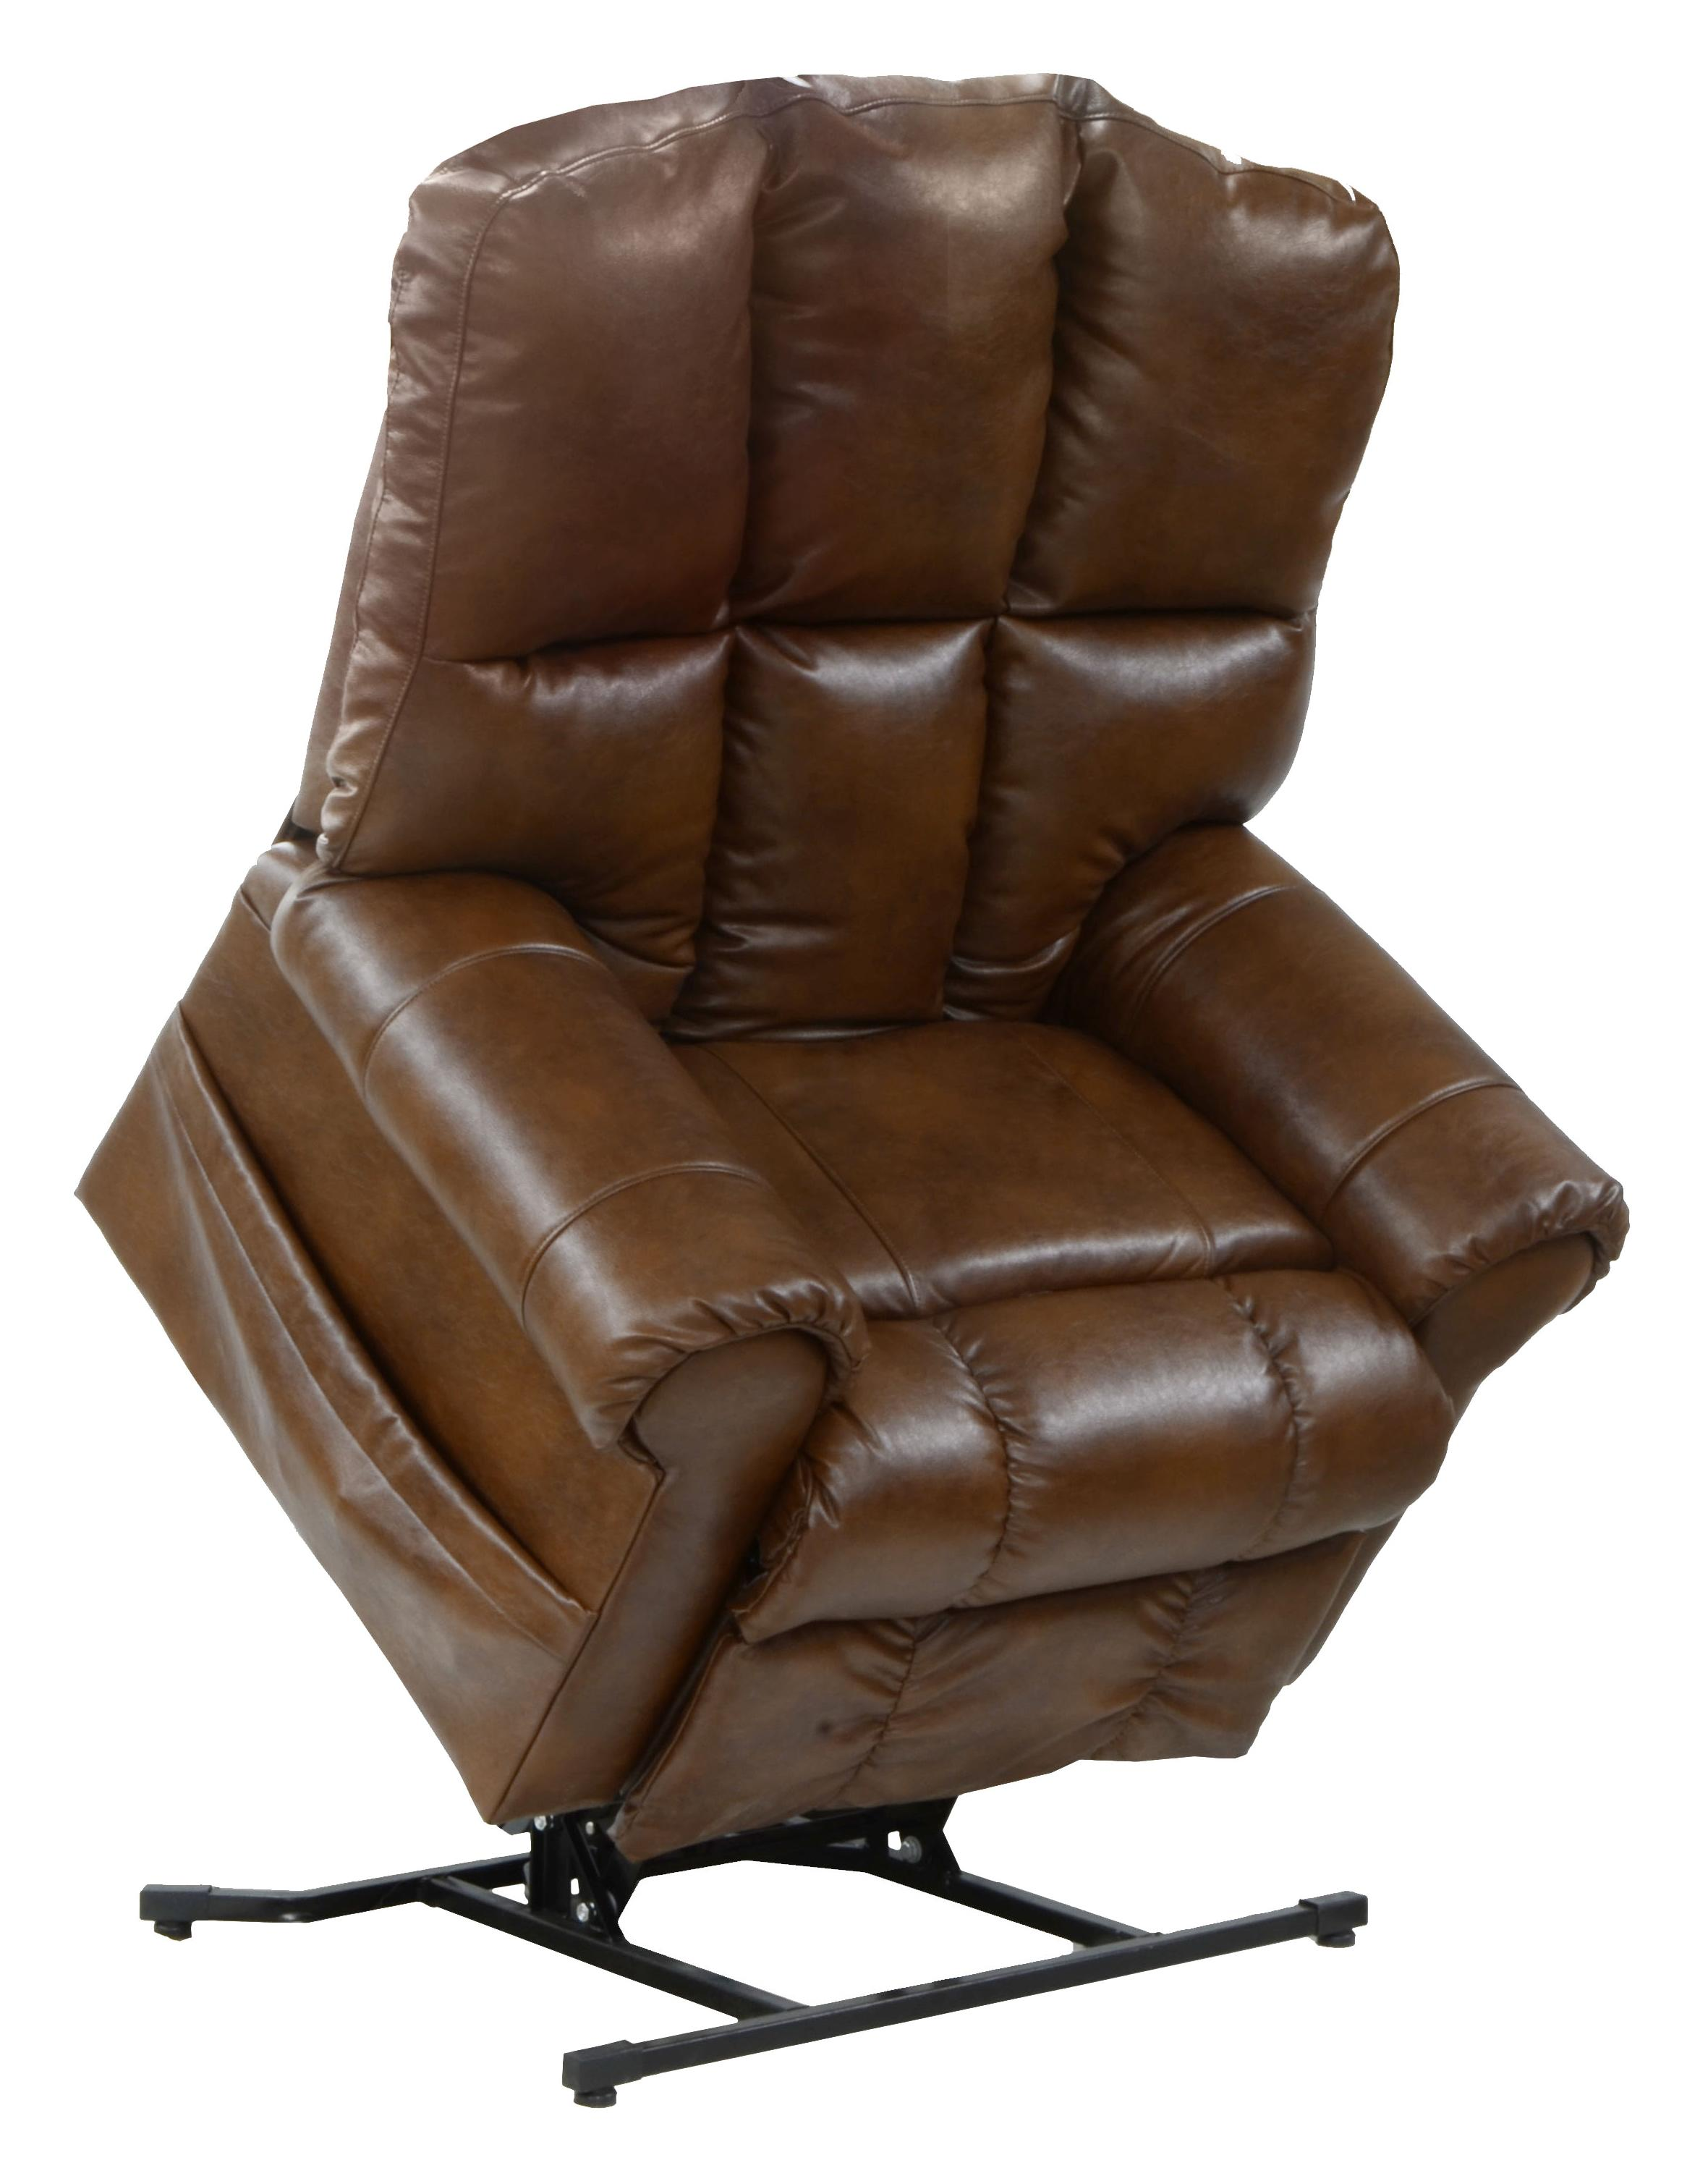 Lift Chairs Recliners Stallworth Power Lift Full Lay Out Recliner By Catnapper